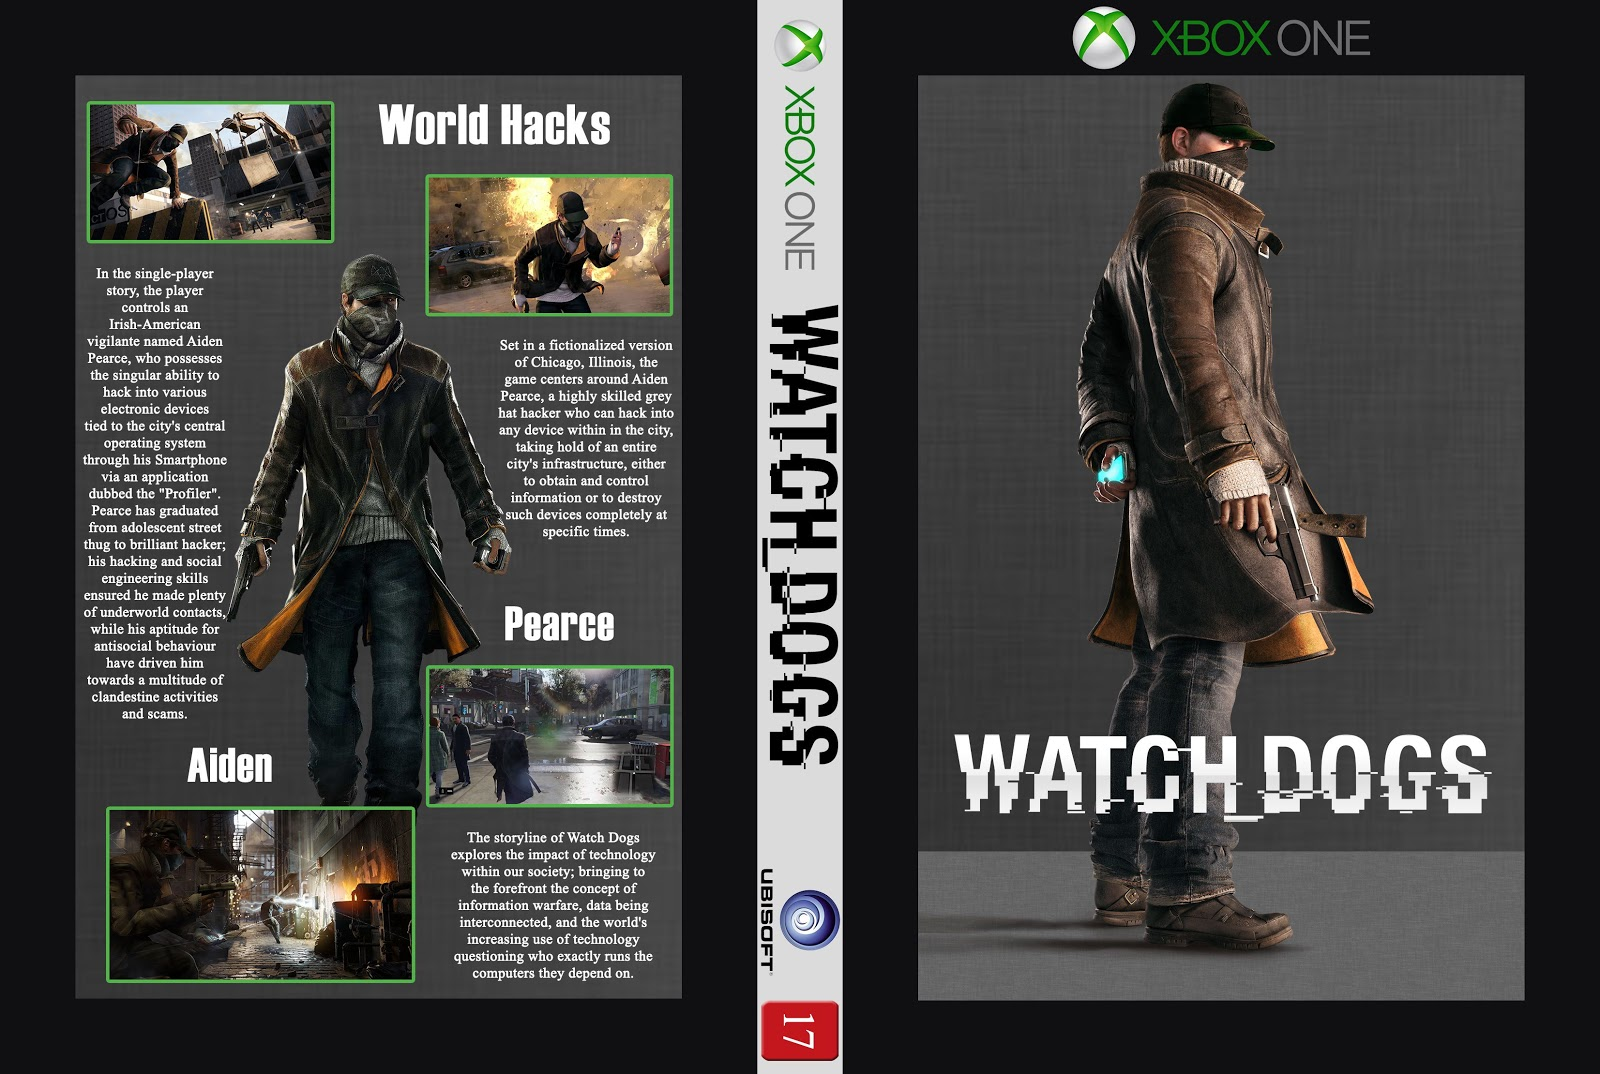 Capa Watch Dogs Xbox One